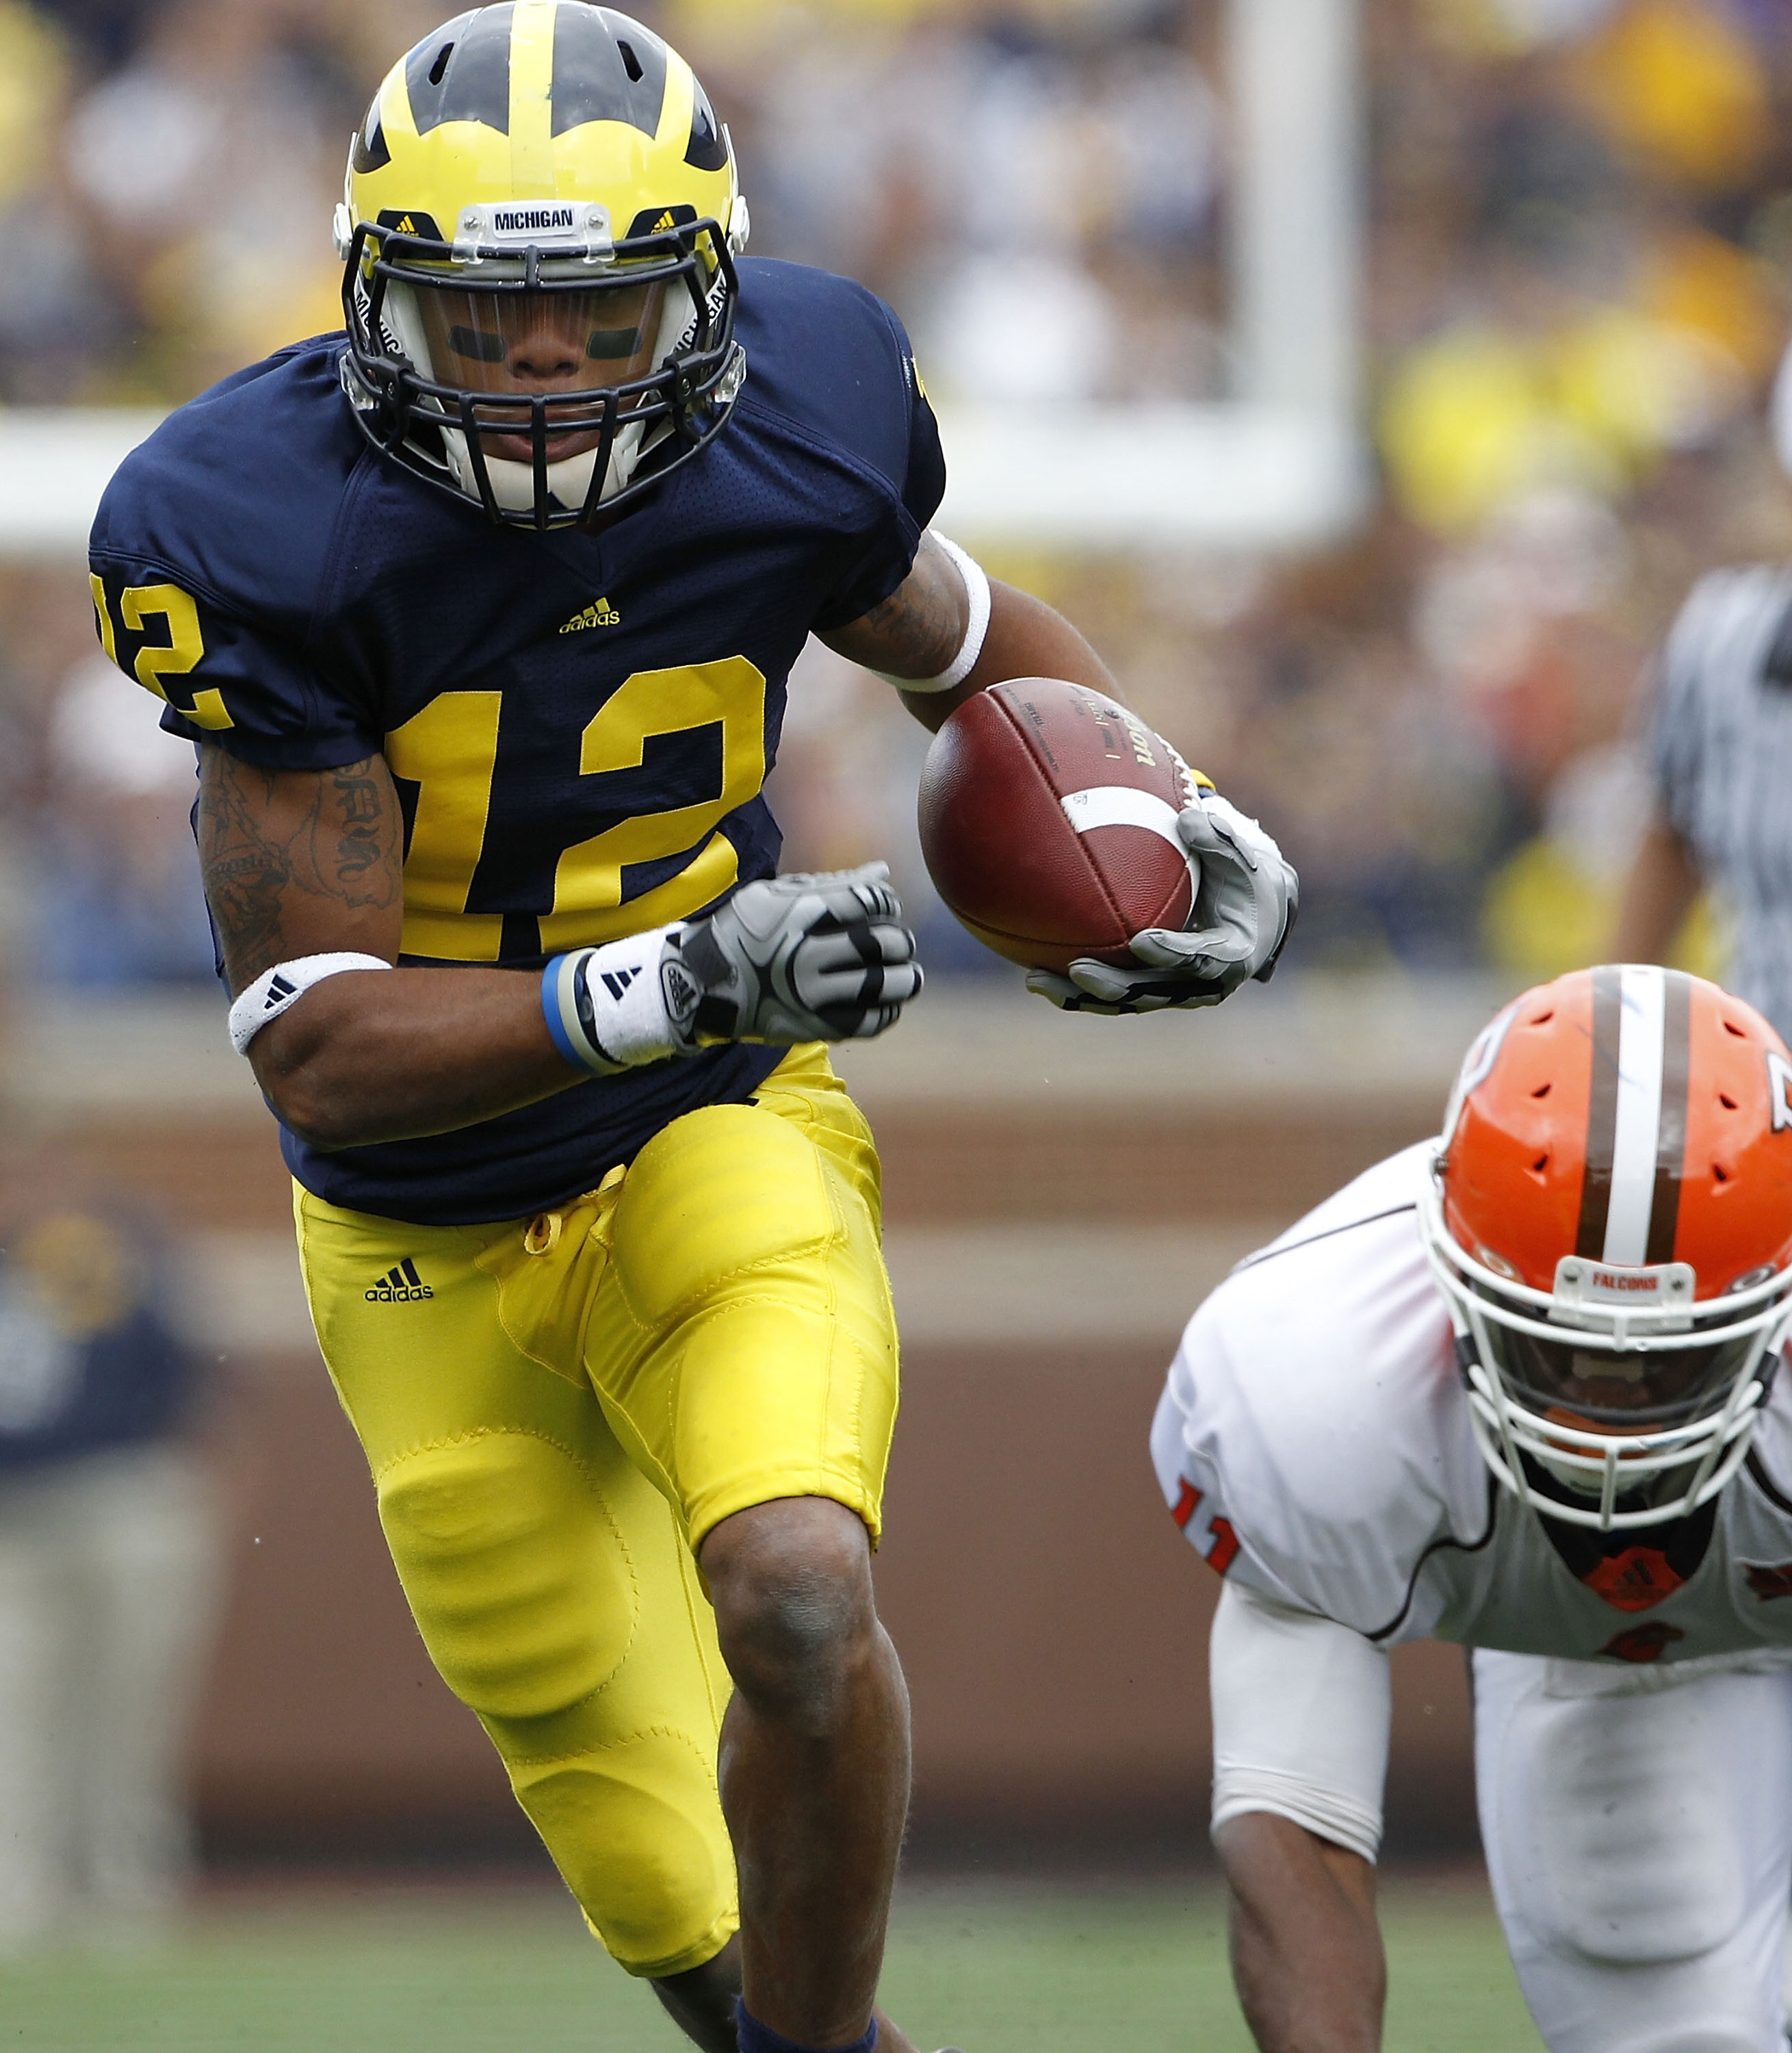 ANN ARBOR, MI - SEPTEMBER 25: Roy Roundtree #12 of the Michigan Wolverines runs for a 32 yard gain after catching the pass from Denard Robinson during the first quarter of the game against Bowling Green on September 25, 2010 at Michigan Stadium in Ann Arb